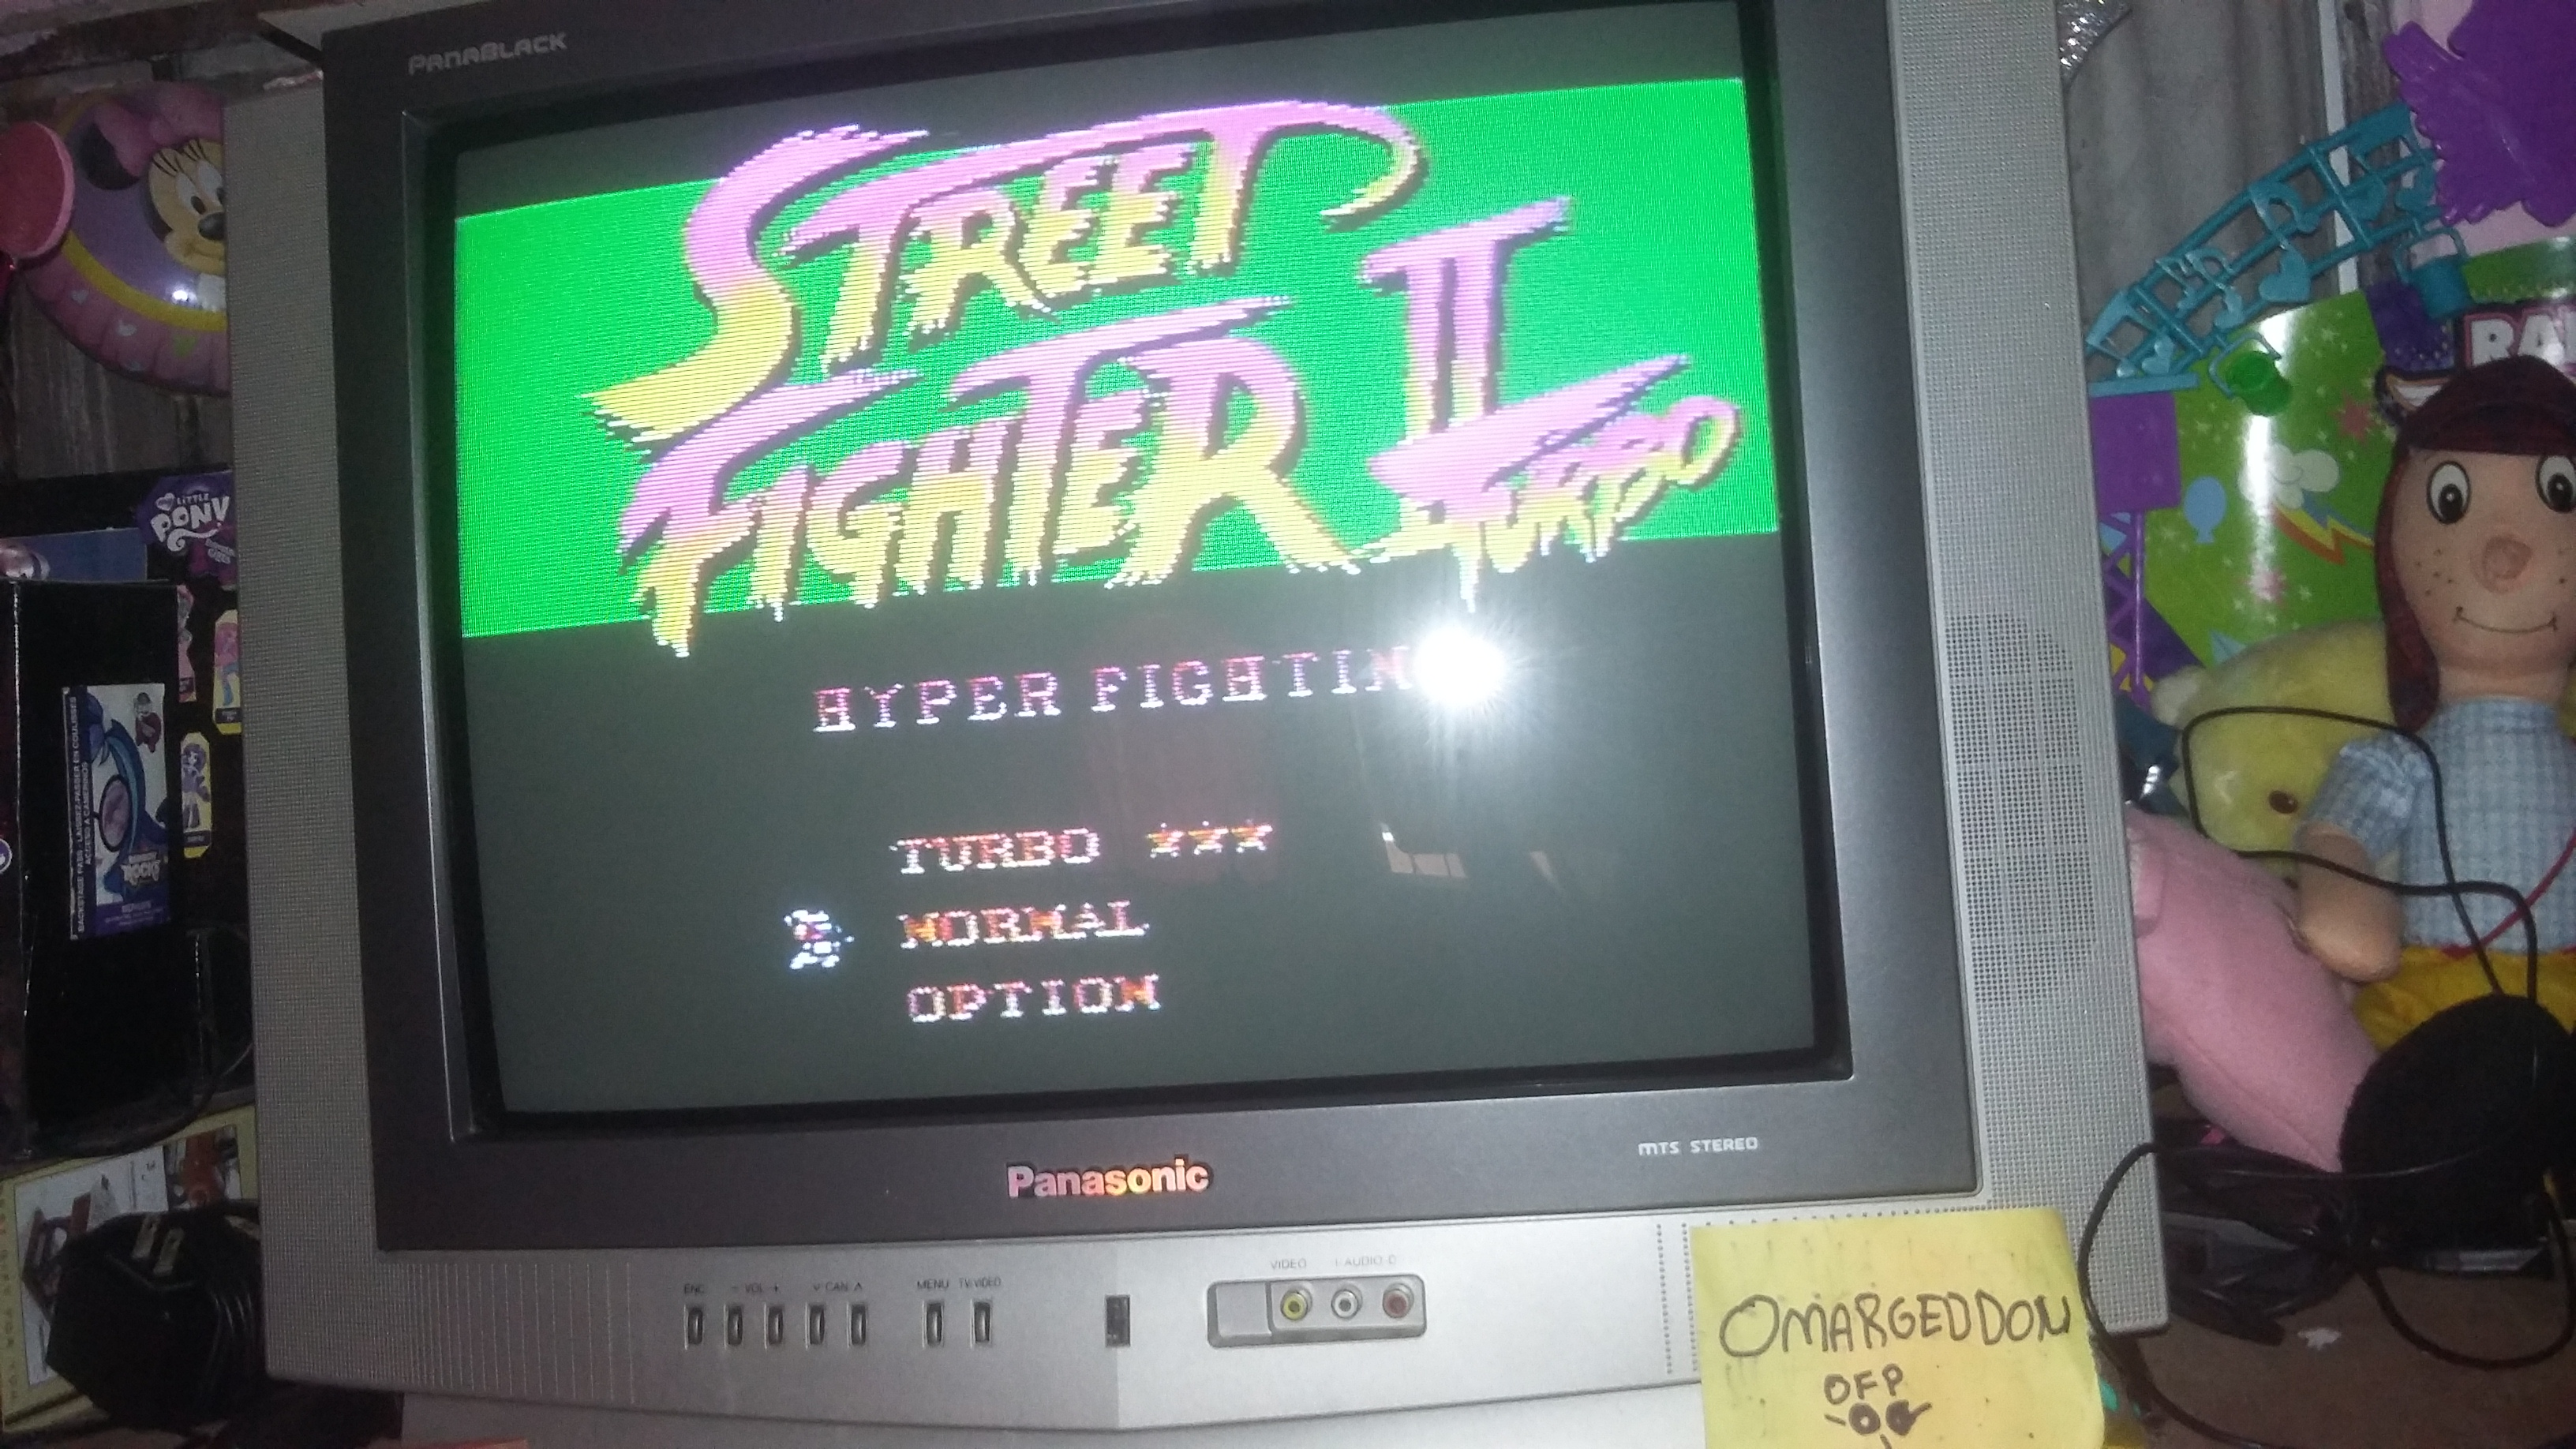 omargeddon: Street Fighter II Turbo: Hyper Fighting [Normal / Difficulty 1] (SNES/Super Famicom) 1,158,500 points on 2016-12-17 14:17:41